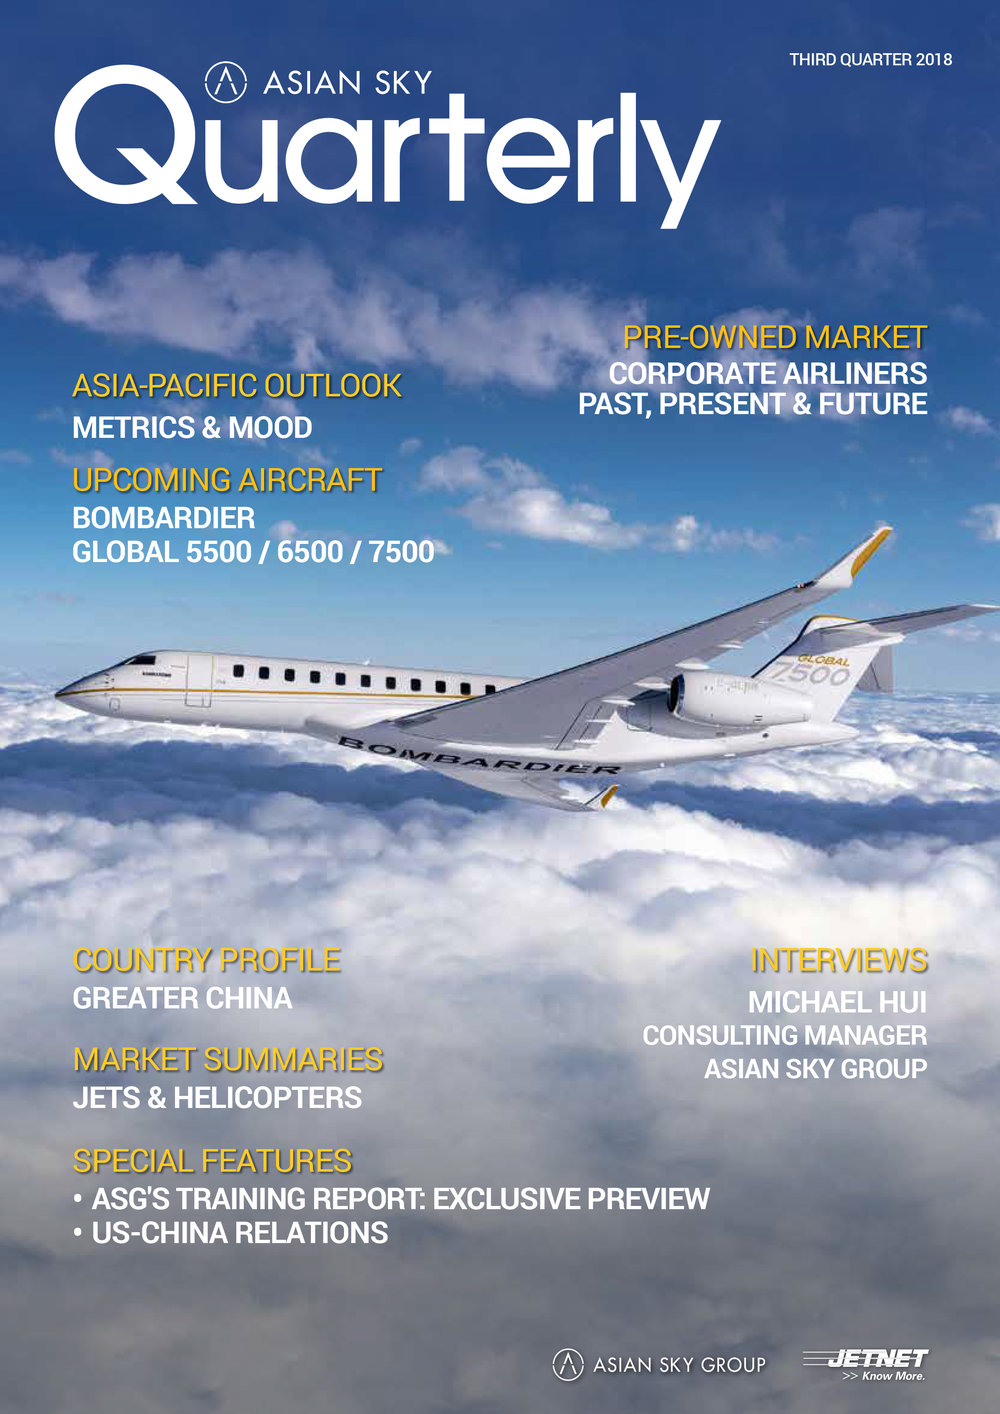 Asian Sky Quarterly - Q3 2018